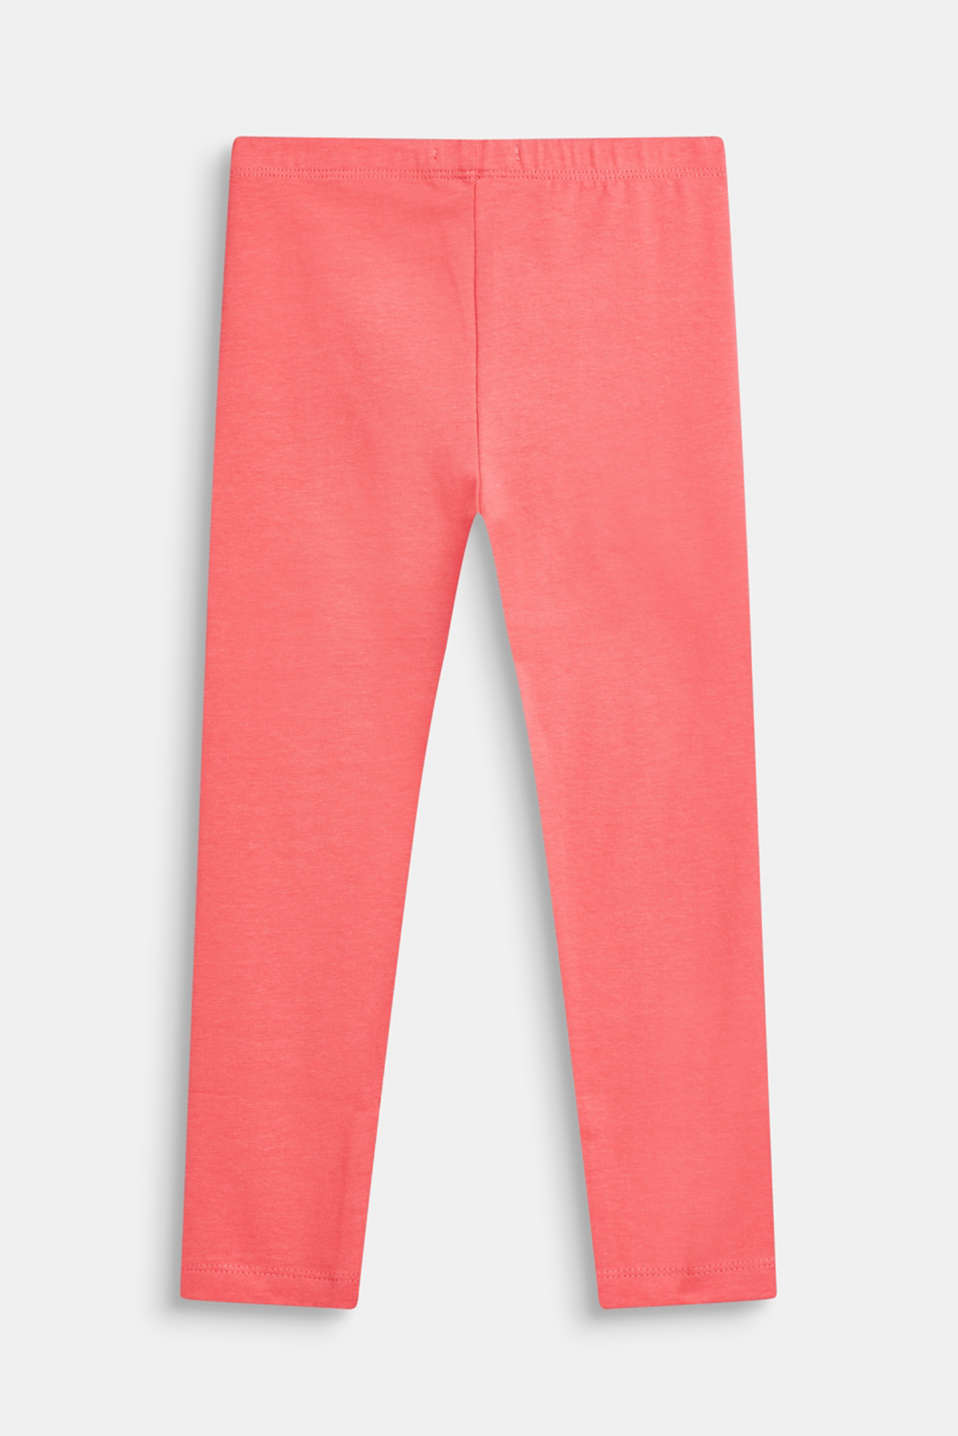 Basic stretch cotton leggings, CORAL, detail image number 1